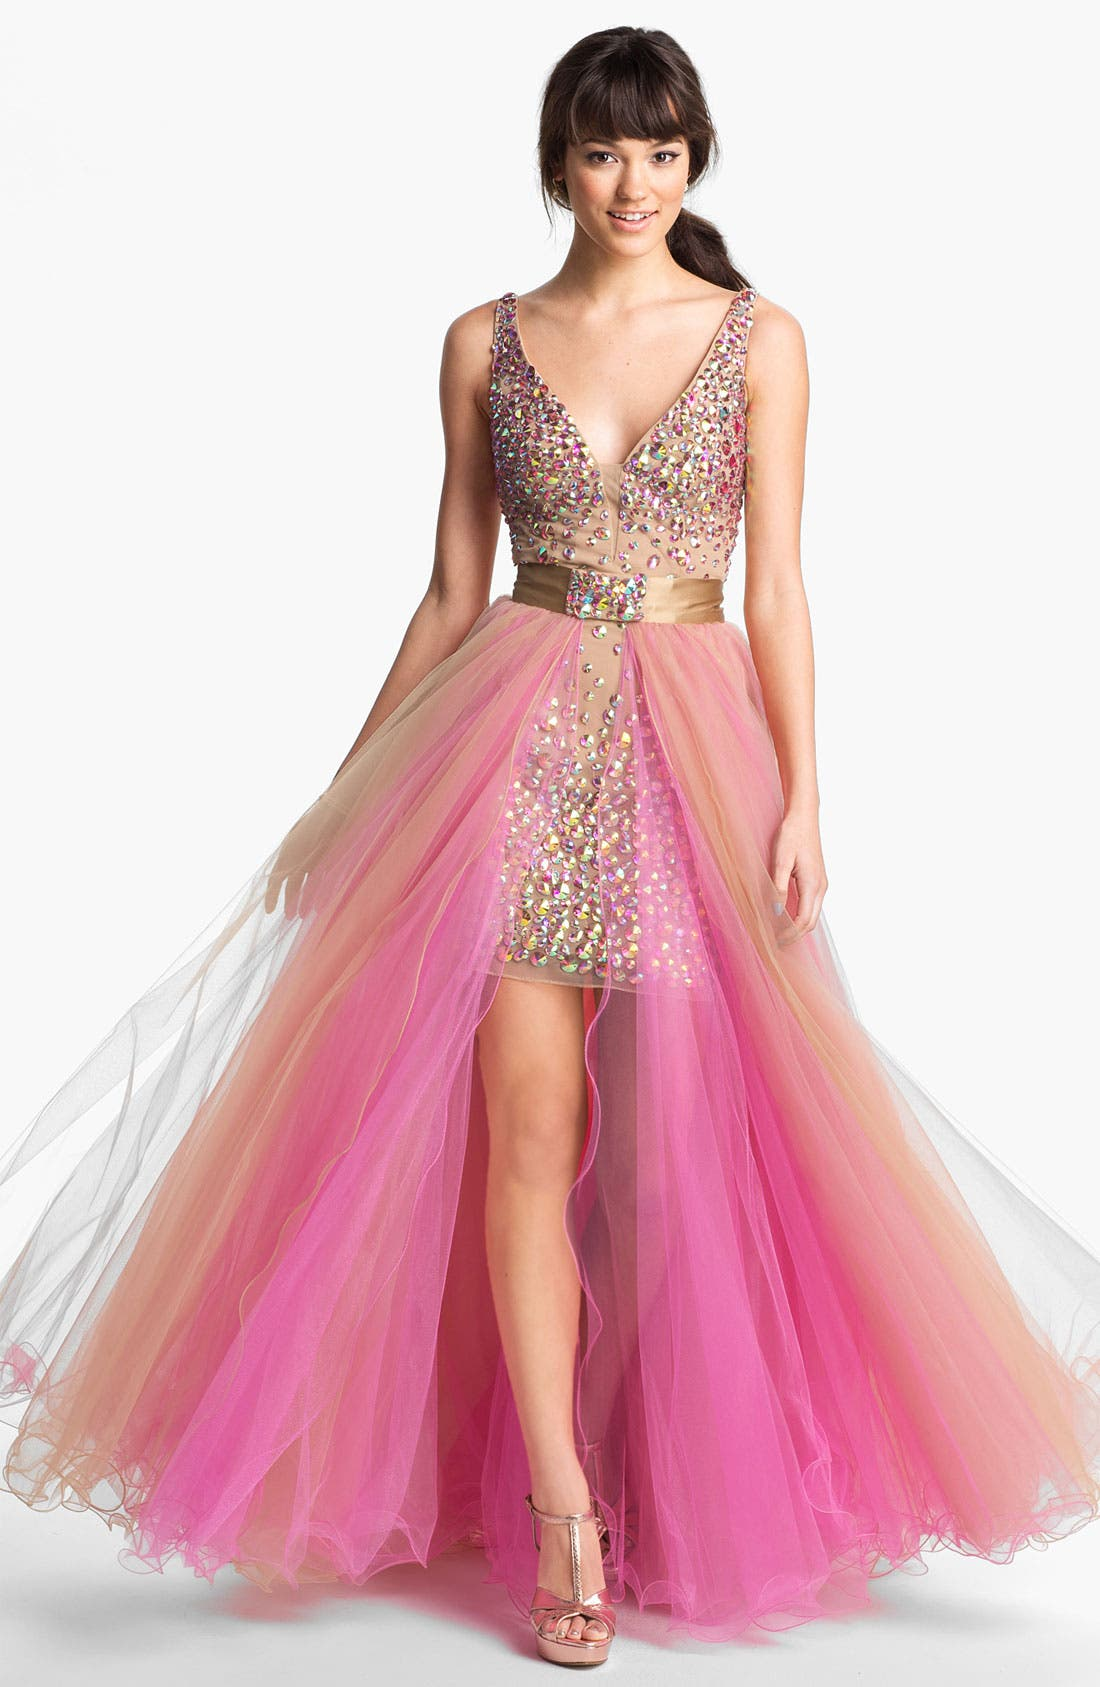 Main Image - Sherri Hill Beaded Tulle Overlay Dress (Online Exclusive)